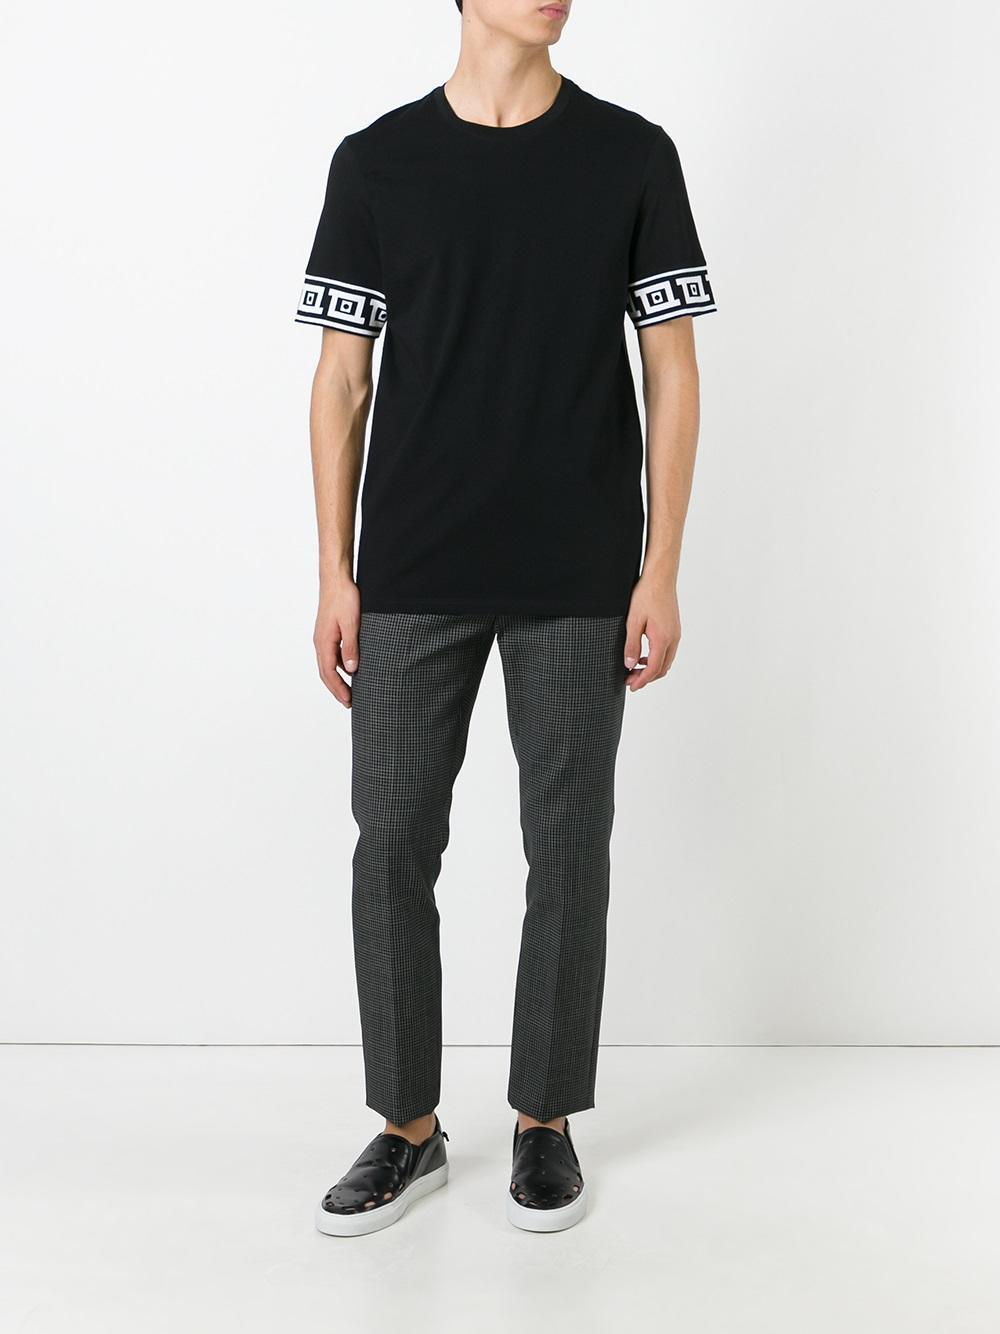 Versace Printed Detail T Shirt In Black For Men Lyst